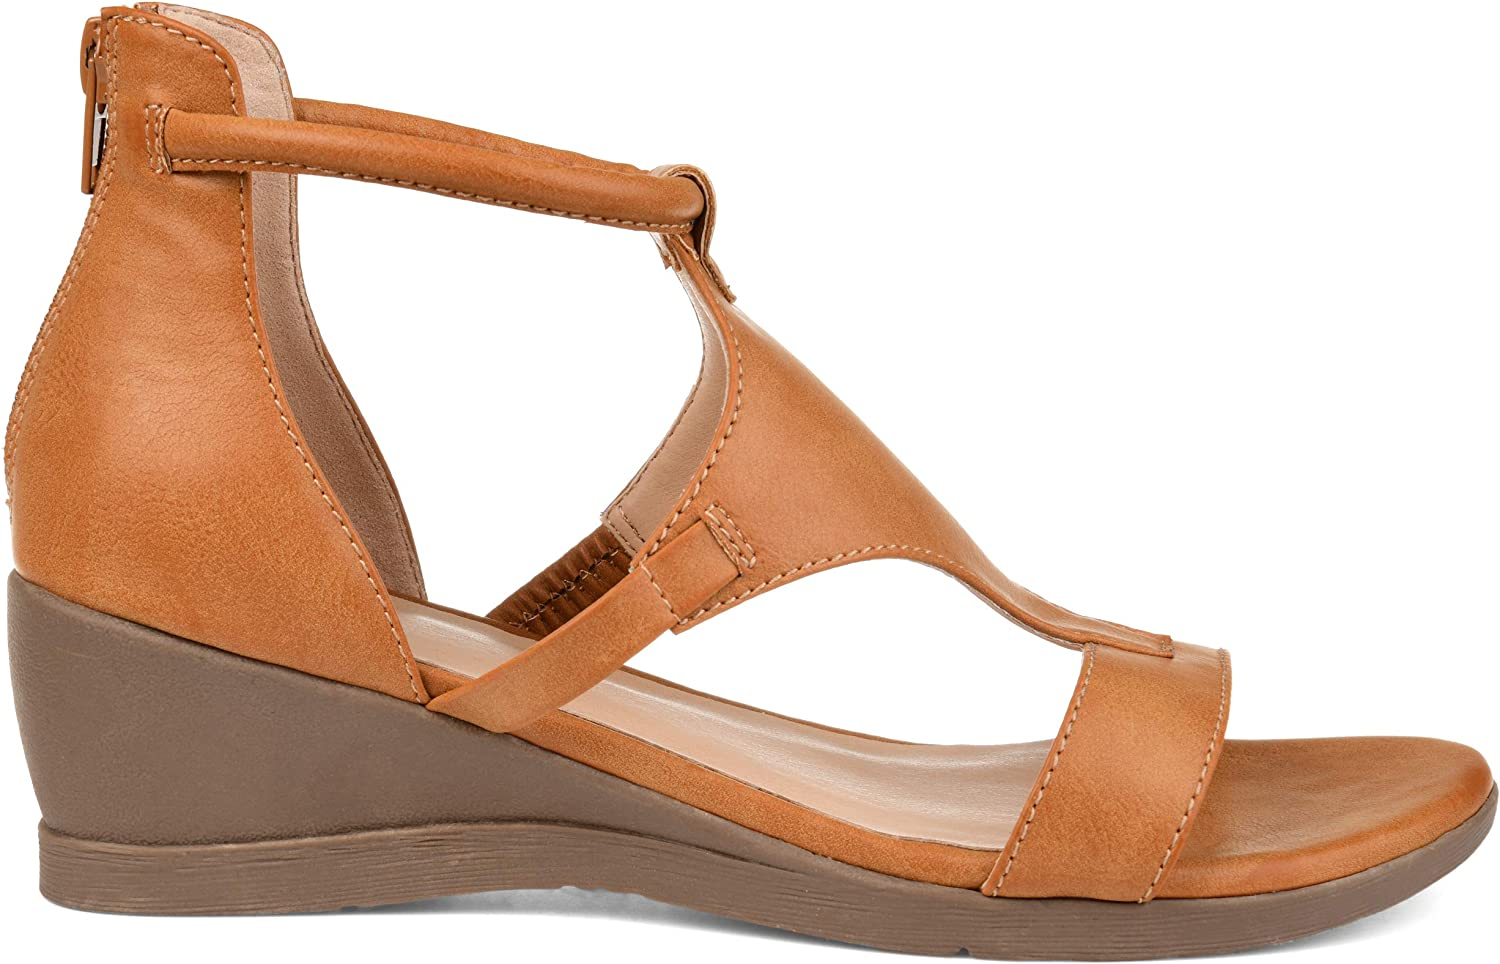 Brinley Co. At the price Lowest price challenge Womens Caged Sandal Wedge